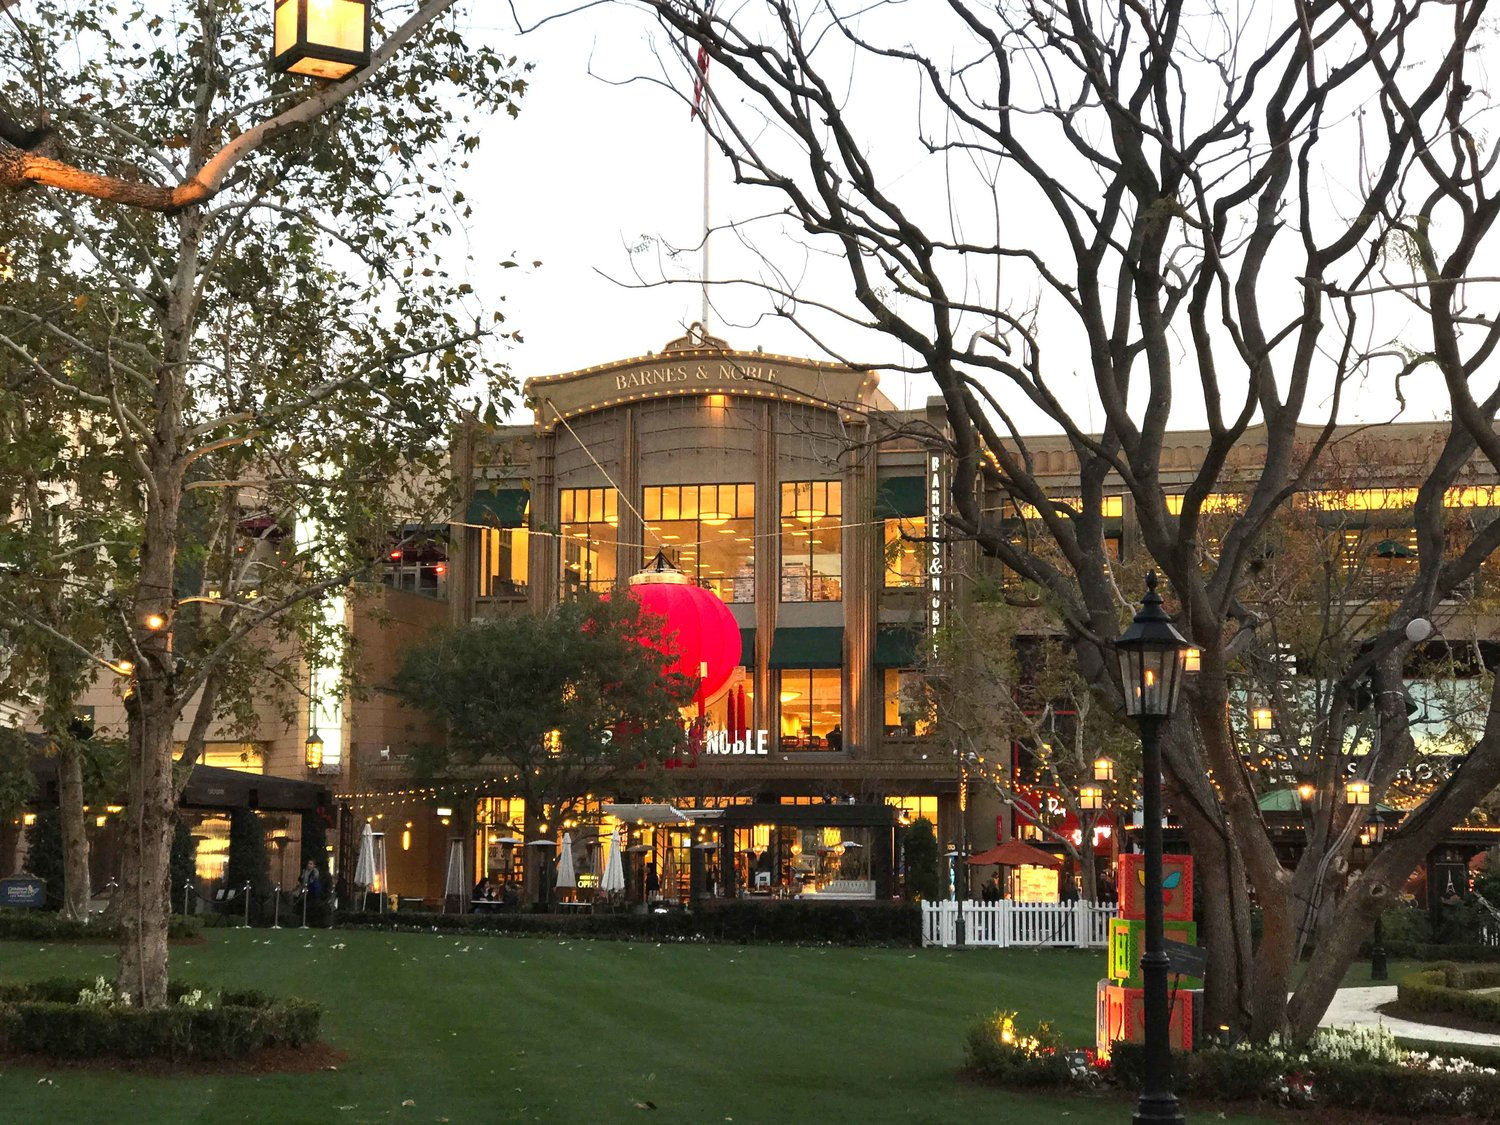 Americana At Brand >> Things To Do In Los Angeles Shopping Mall At The Americana At Brand